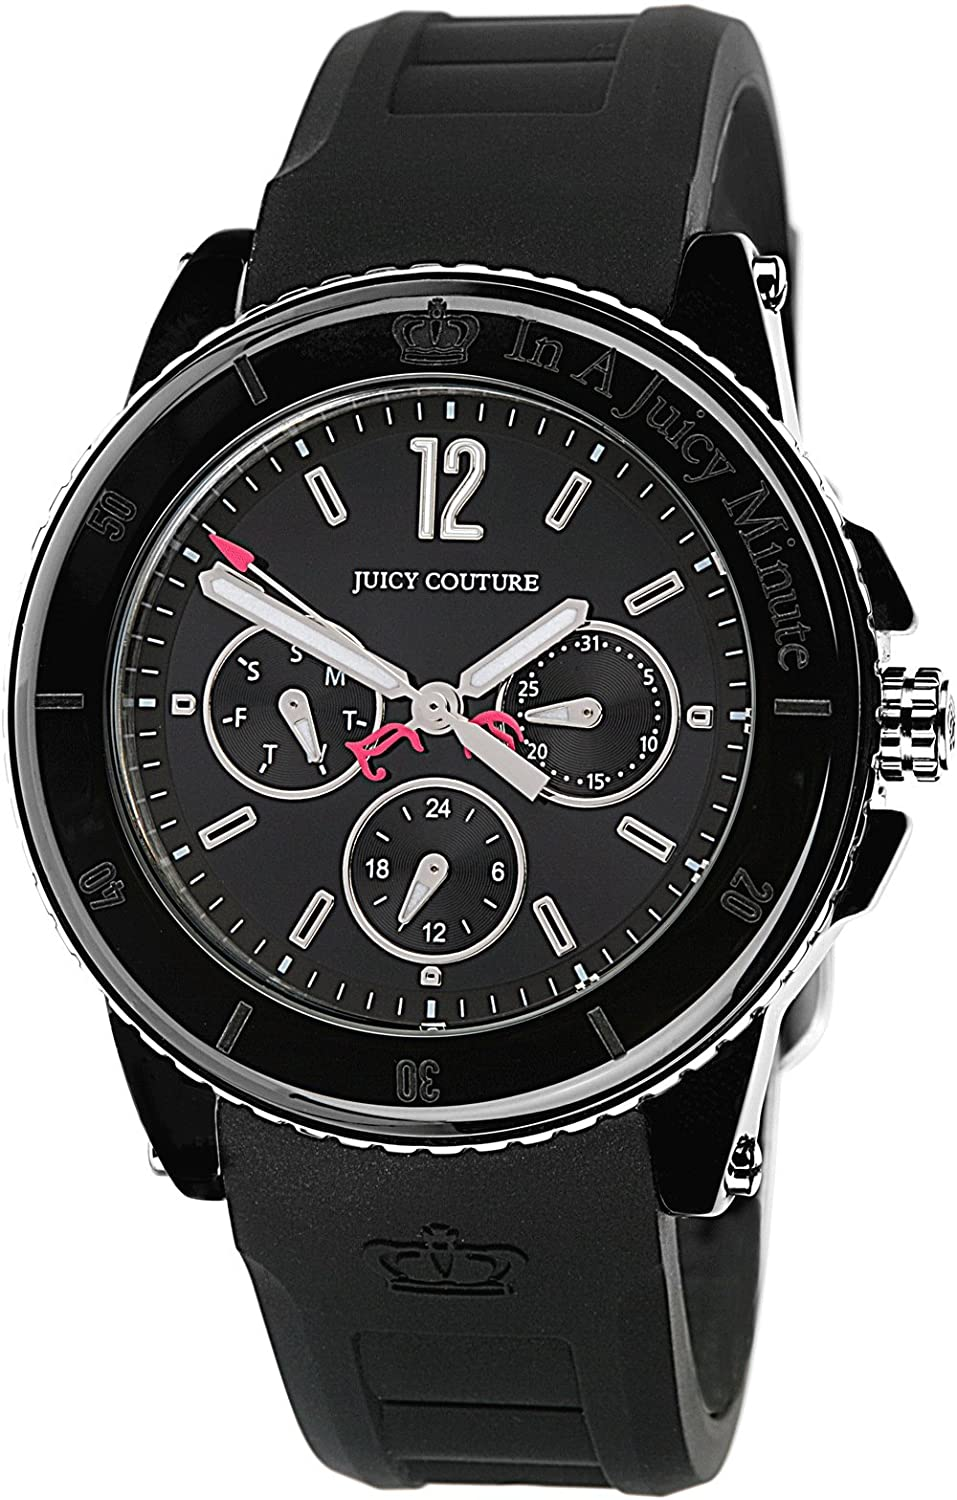 Juicy Couture ladies' 'Pedigree' Black Silicon Strap Watch 1900754